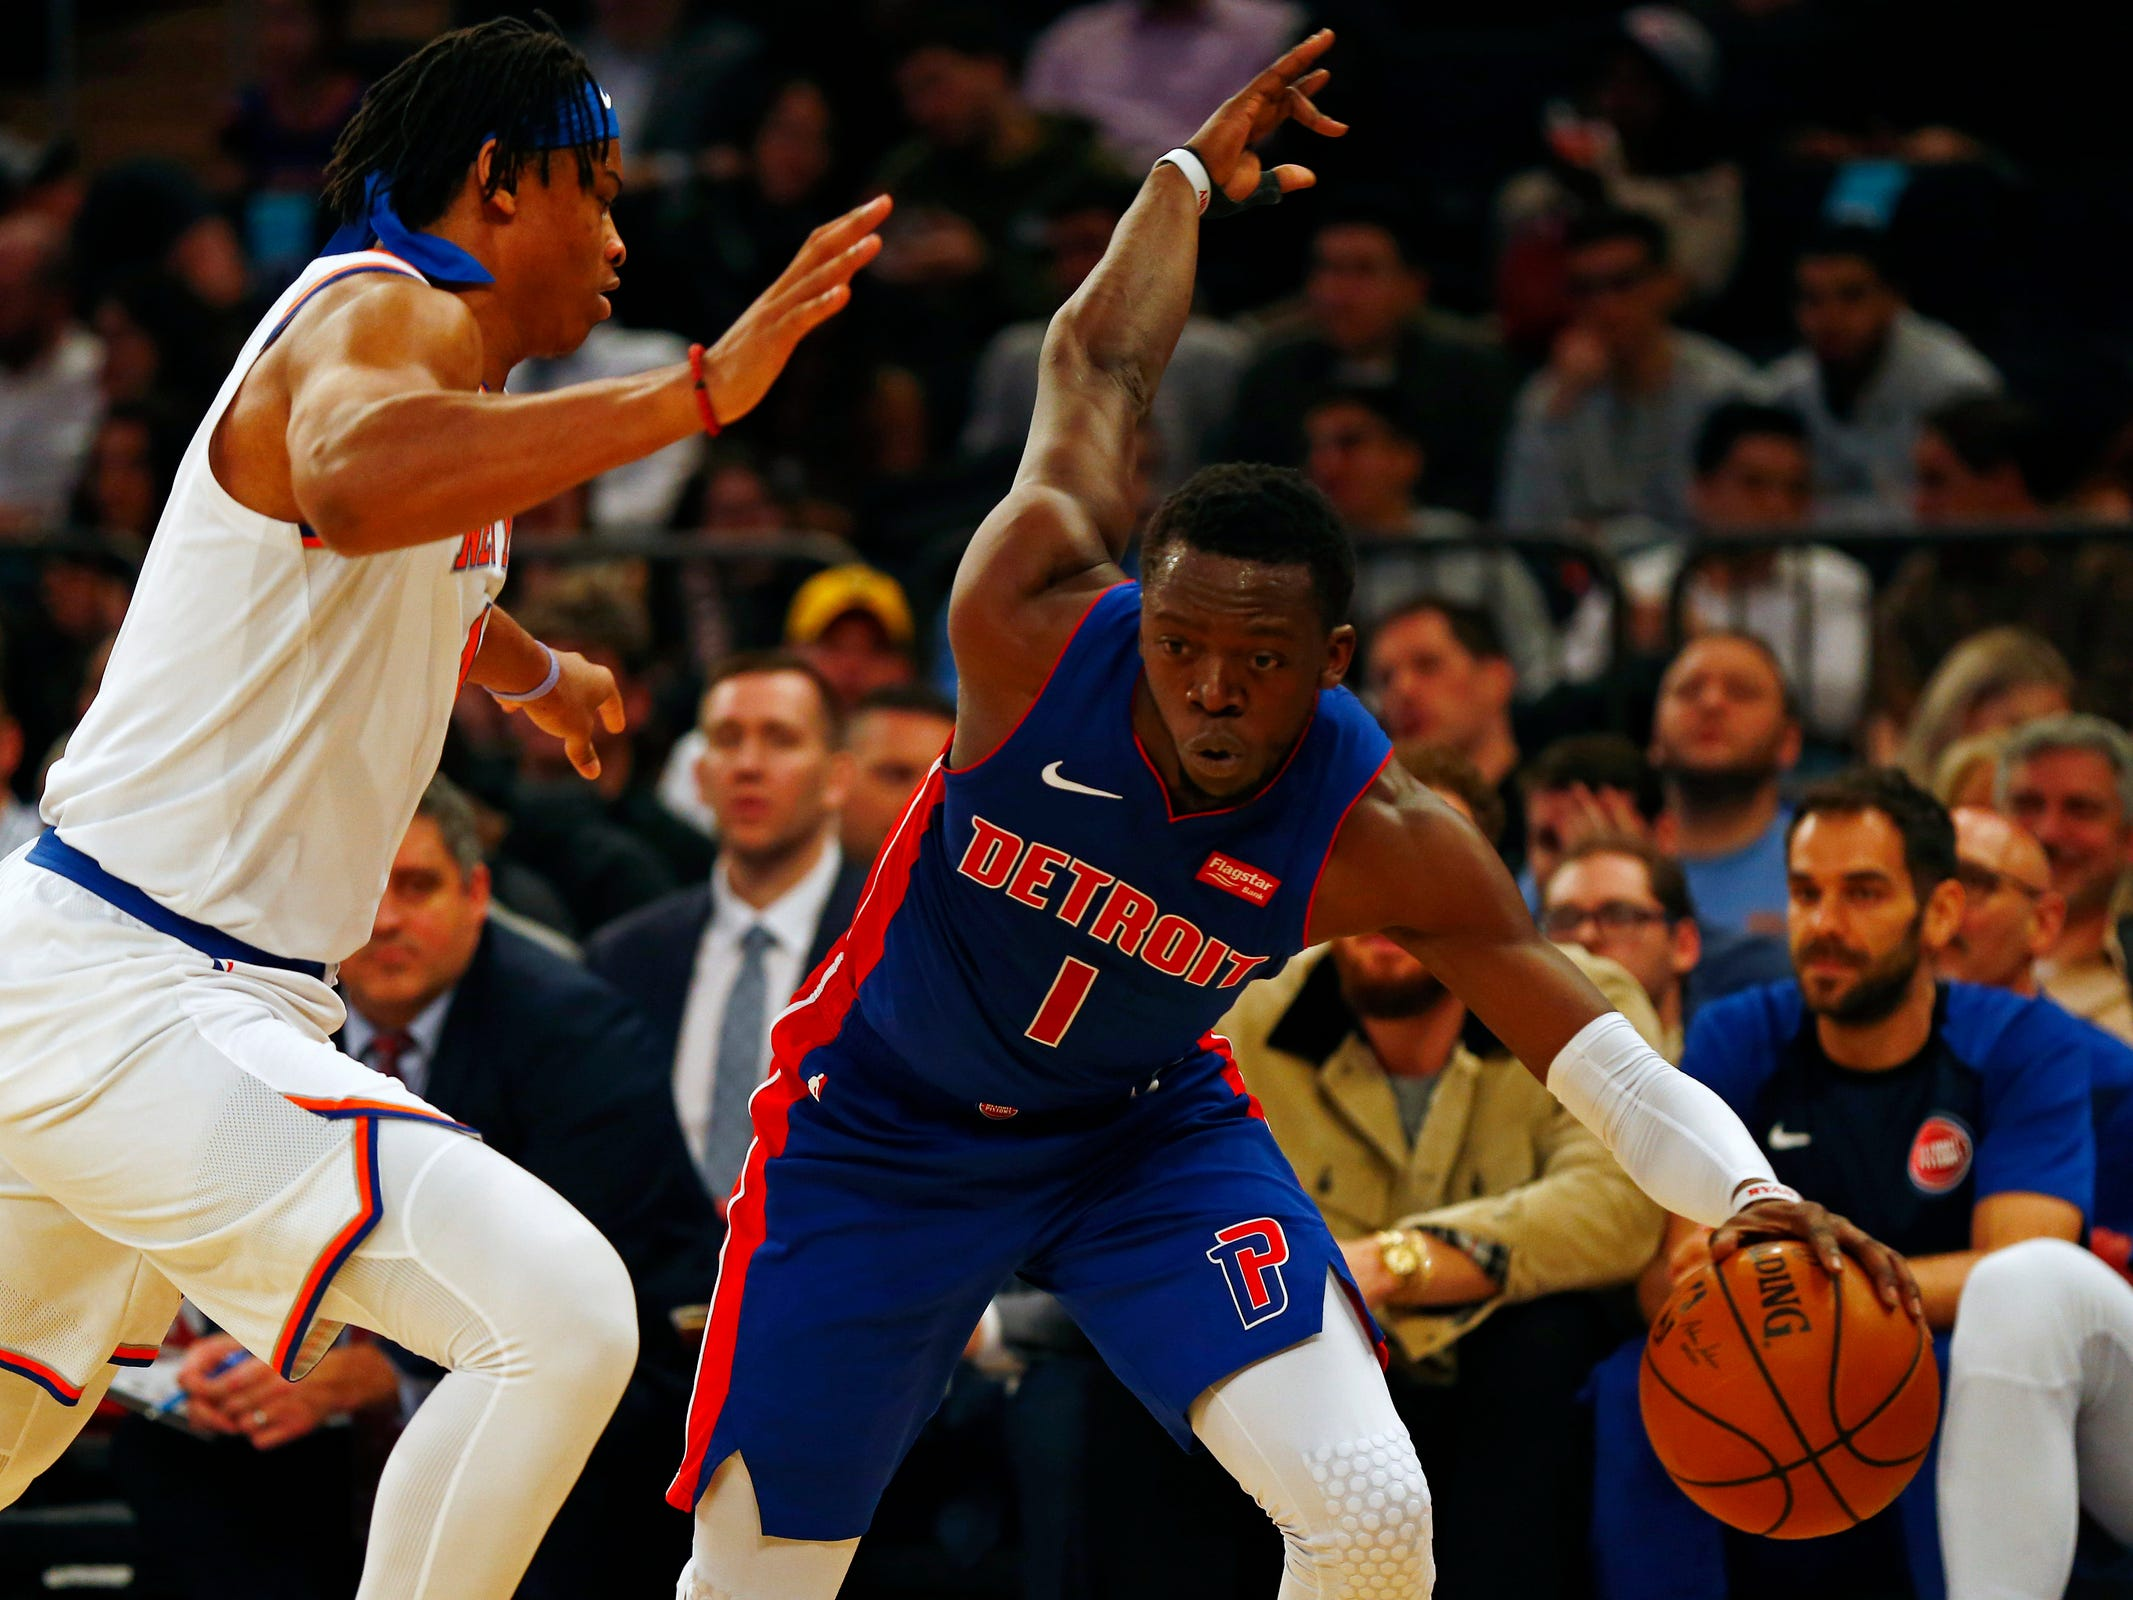 Detroit Pistons guard Reggie Jackson (1) drives to the basket past New York Knicks forward Isaiah Hicks (4) during the first half at Madison Square Garden on Wednesday, April 10, 2019.